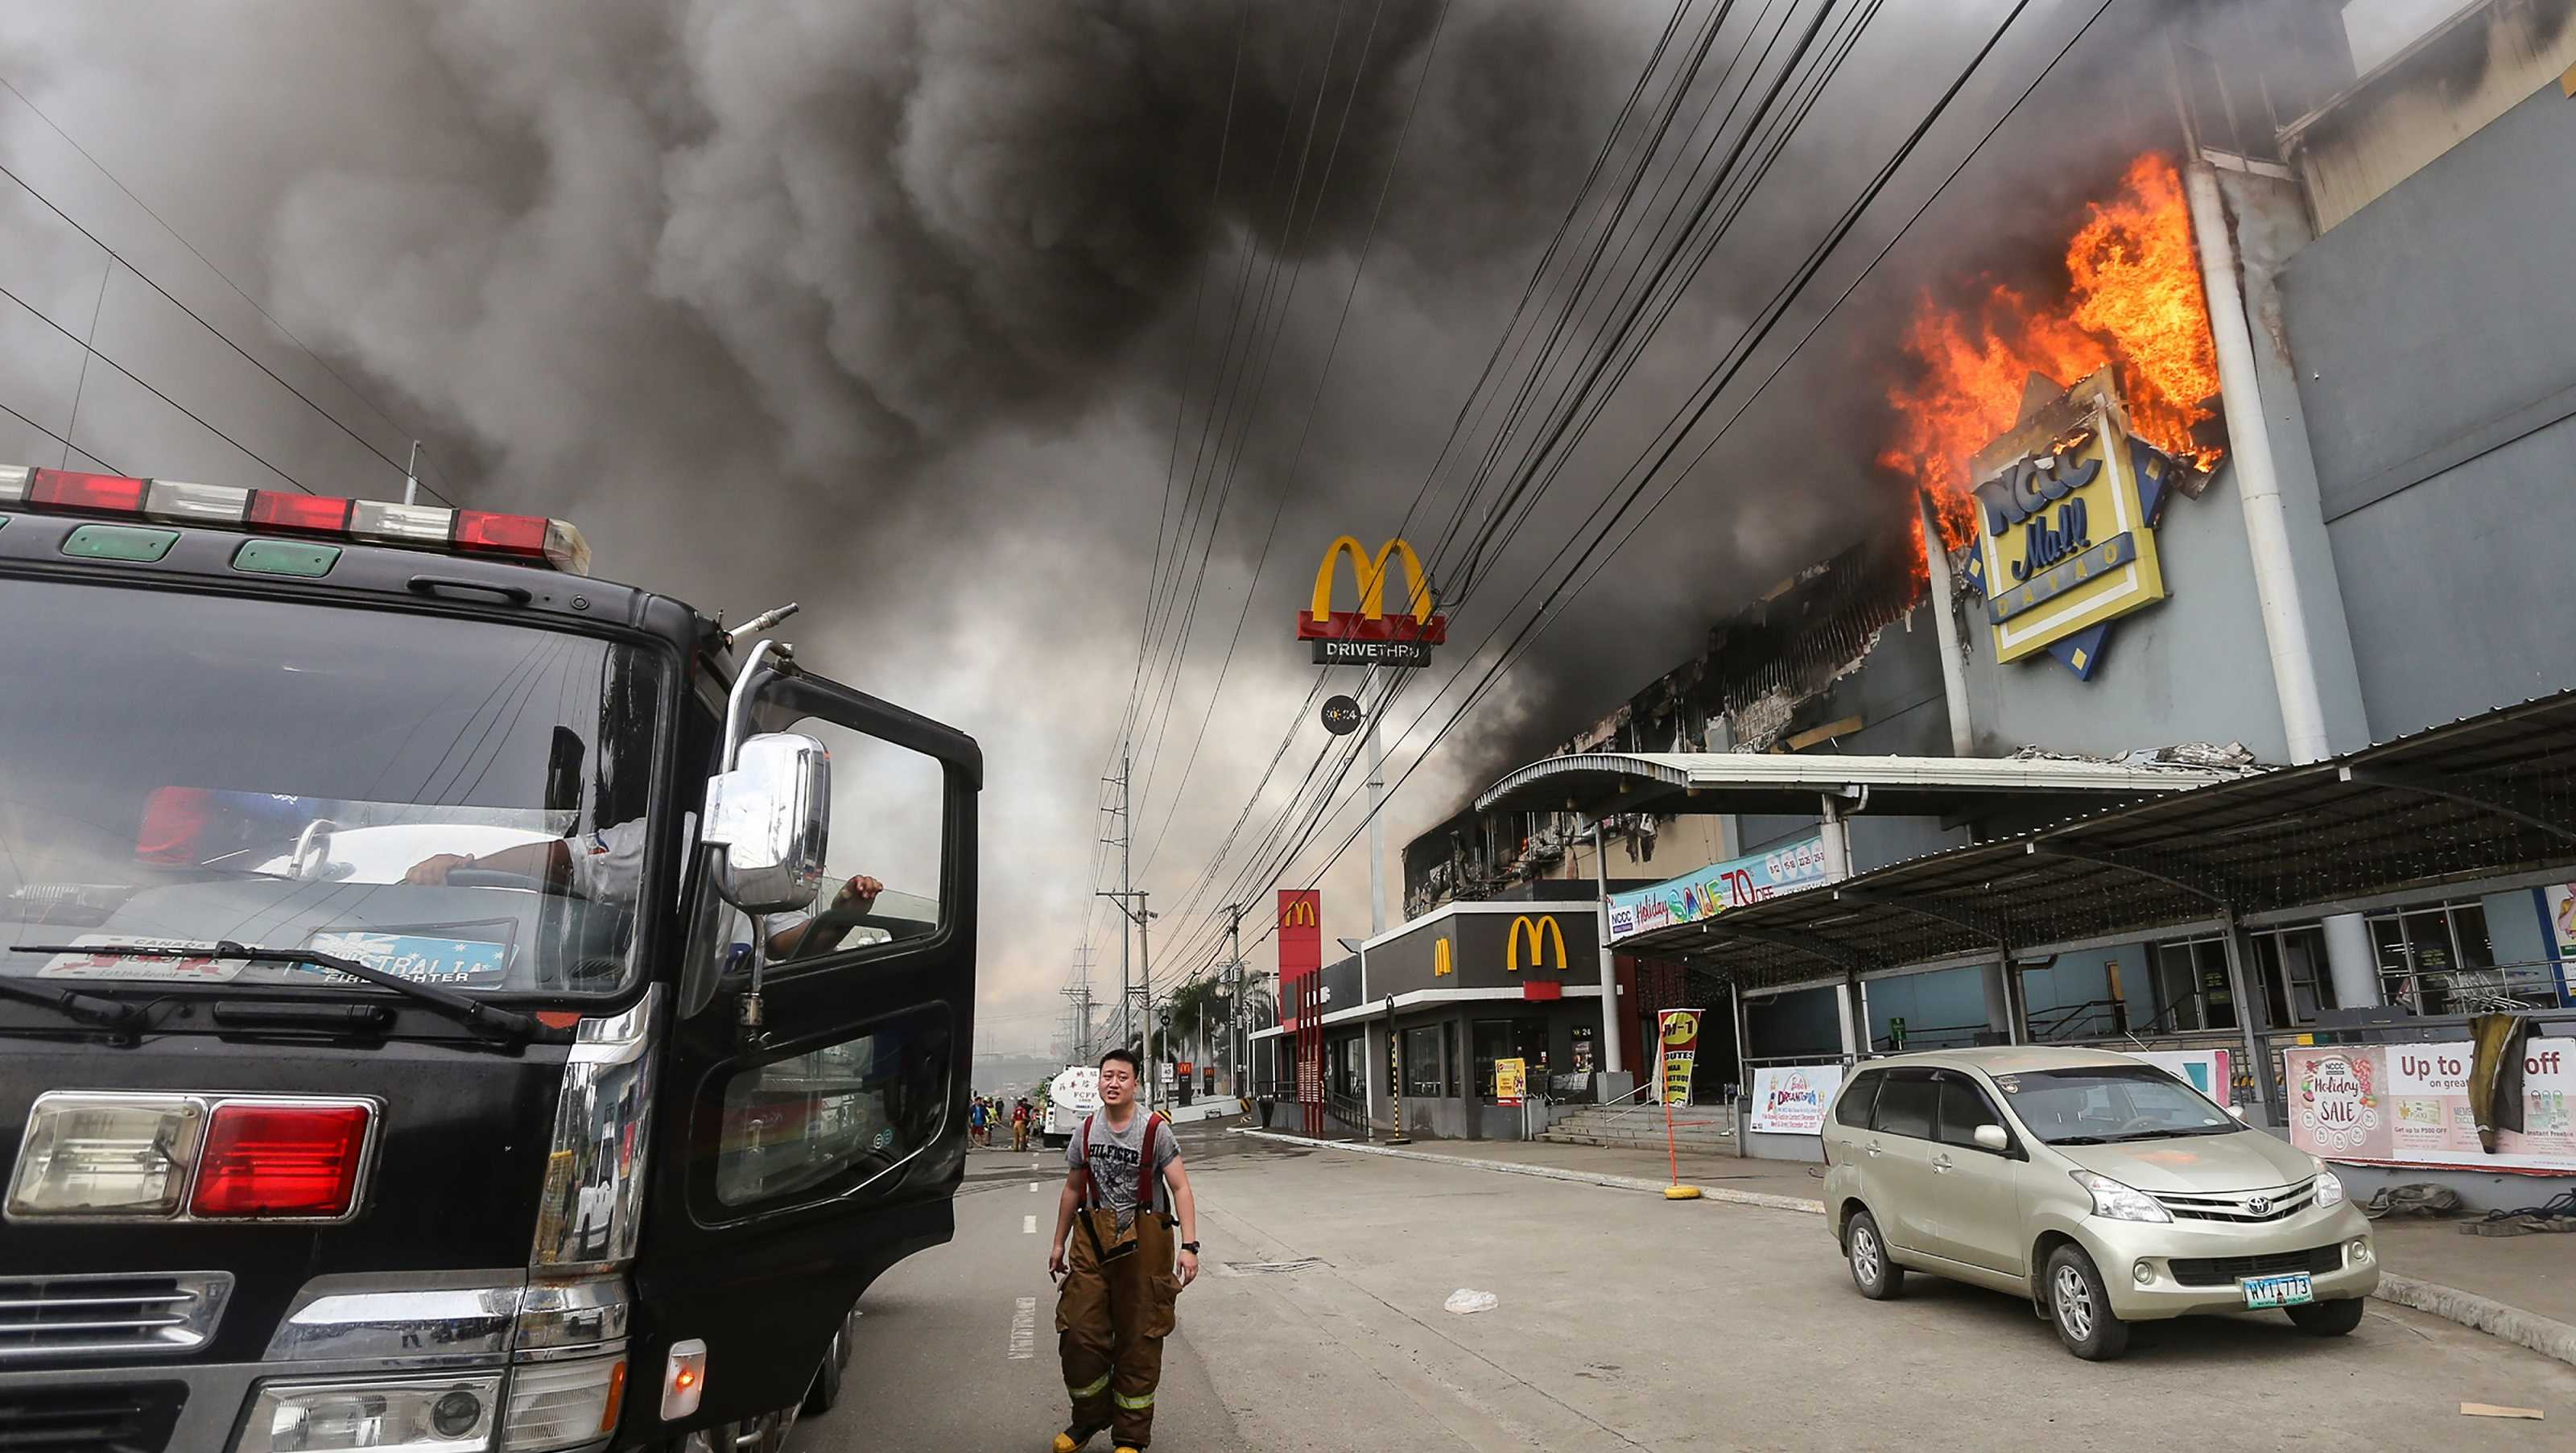 This photo shows a firefighter standing in front of a burning shopping mall in Davao City, on the southern Philippine island of Mindanao.